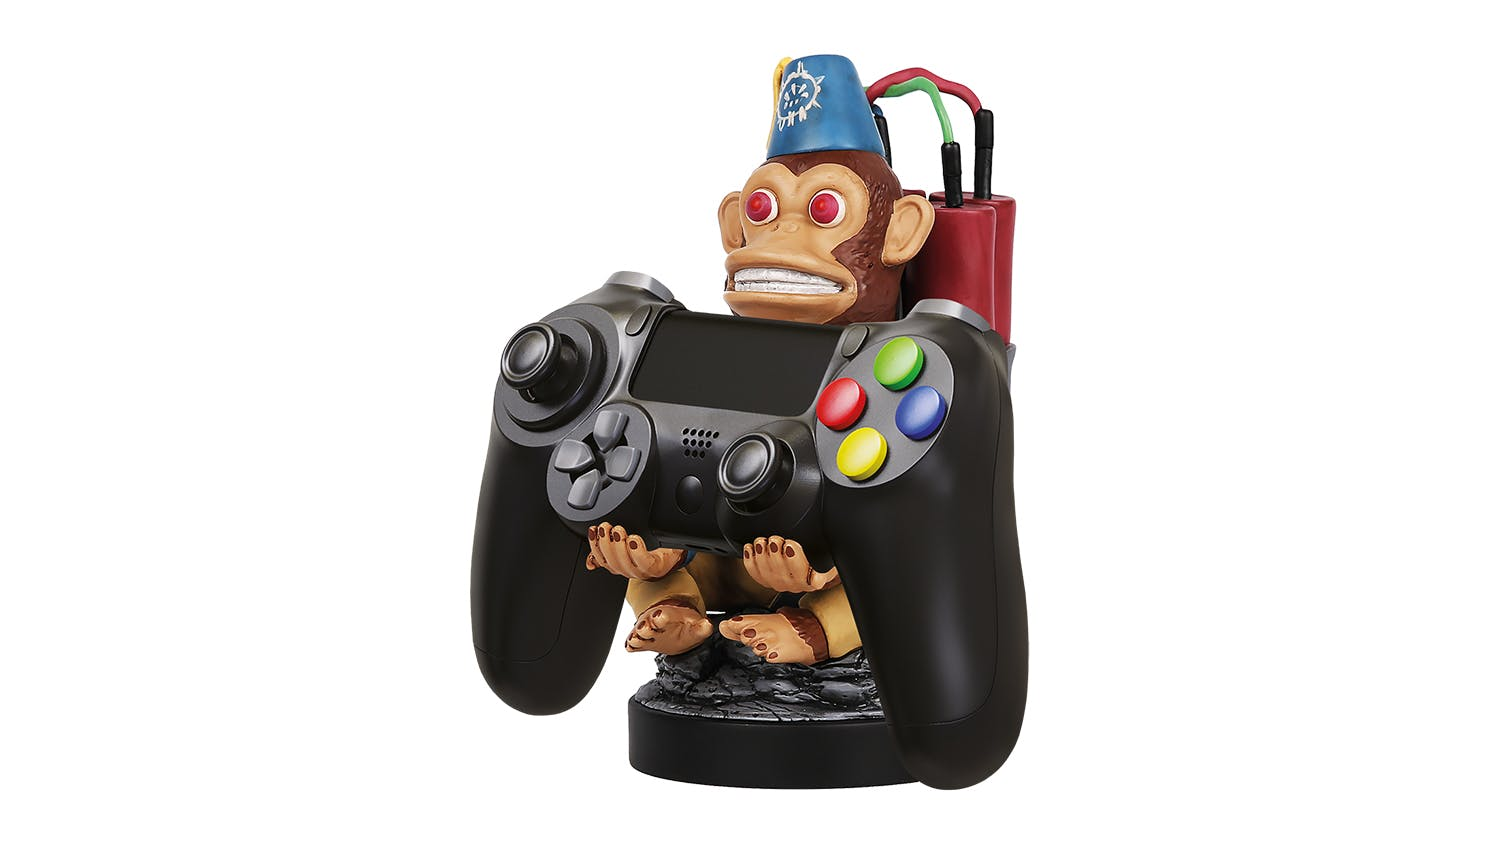 Cable Guys Phone/Controller Holder - Monkey Bomb